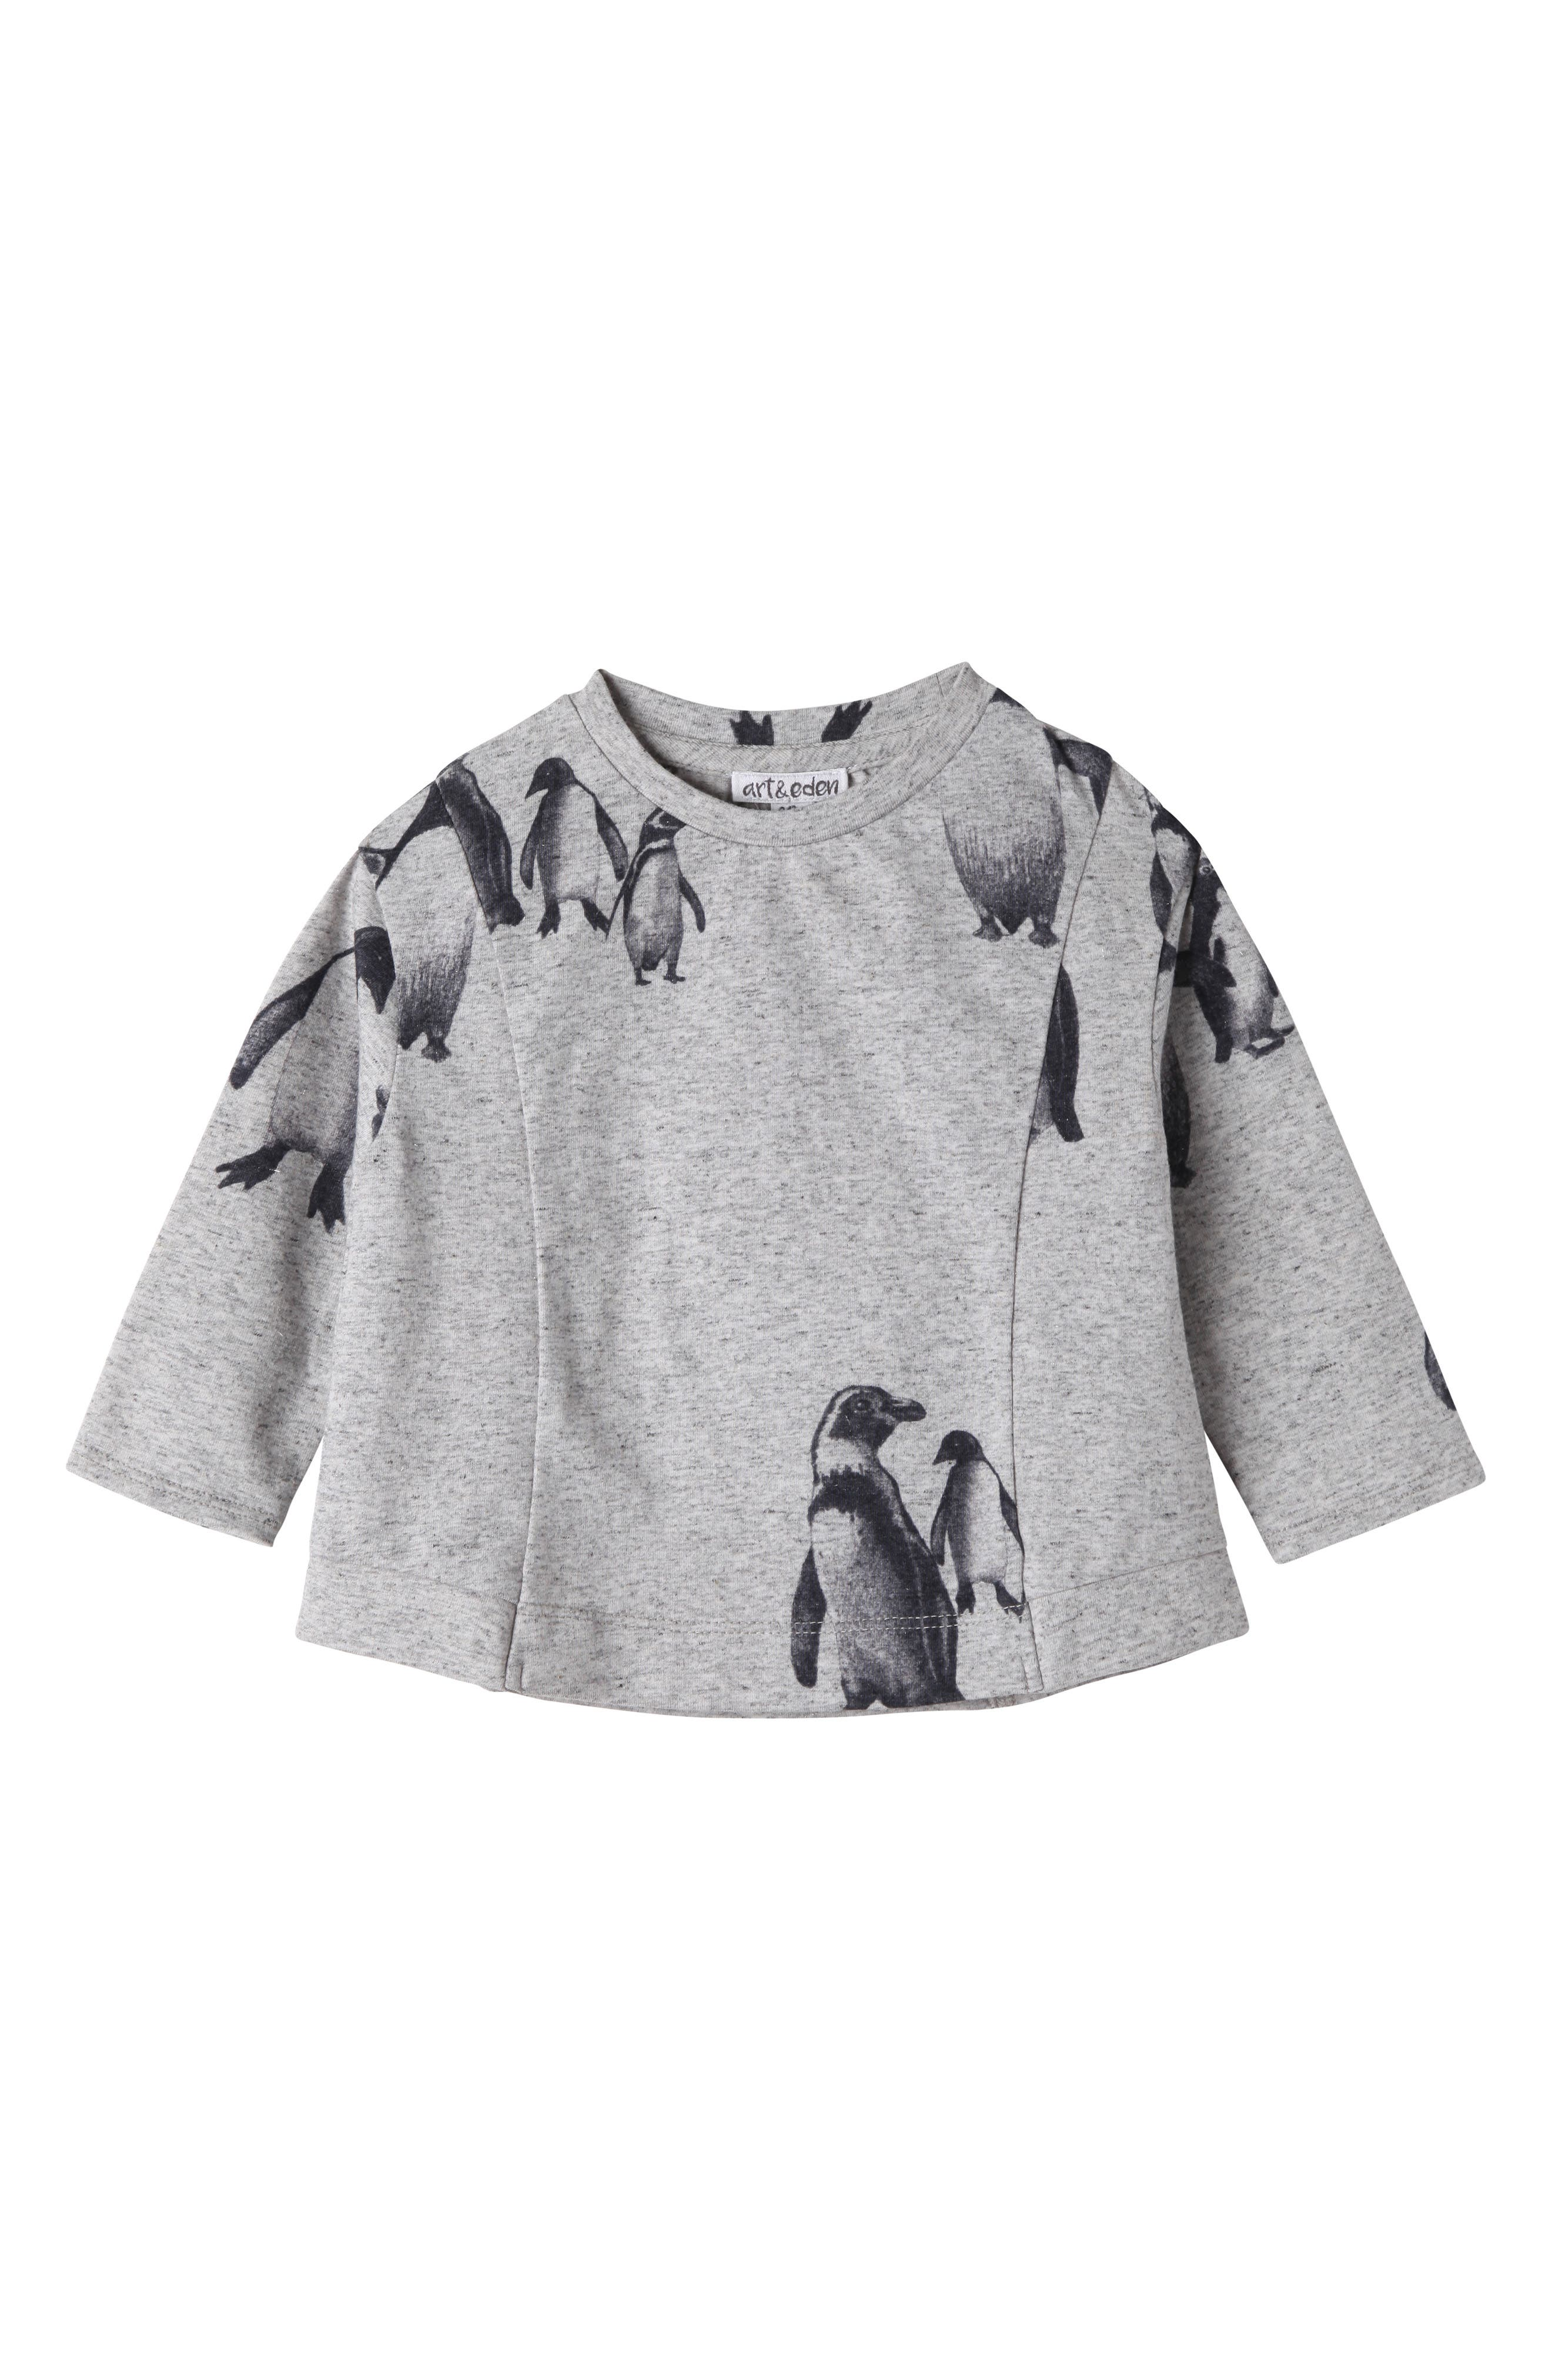 Penguin Graphic Tee,                         Main,                         color, Grey